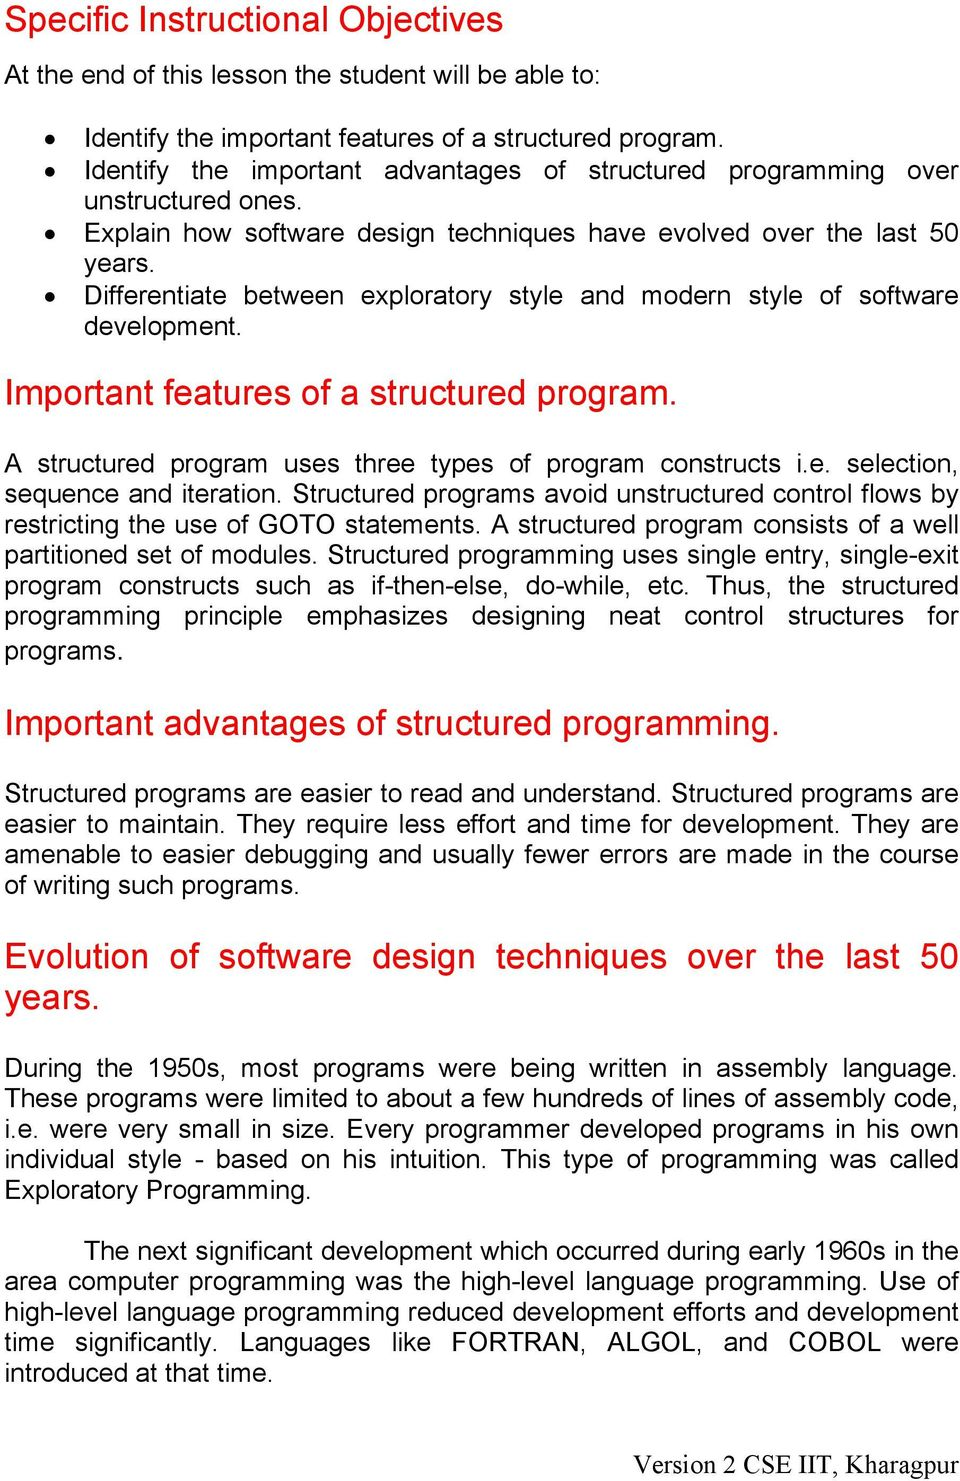 Module 1 Introduction To Software Engineering Version 2 Cse Iit Kharagpur Pdf Free Download